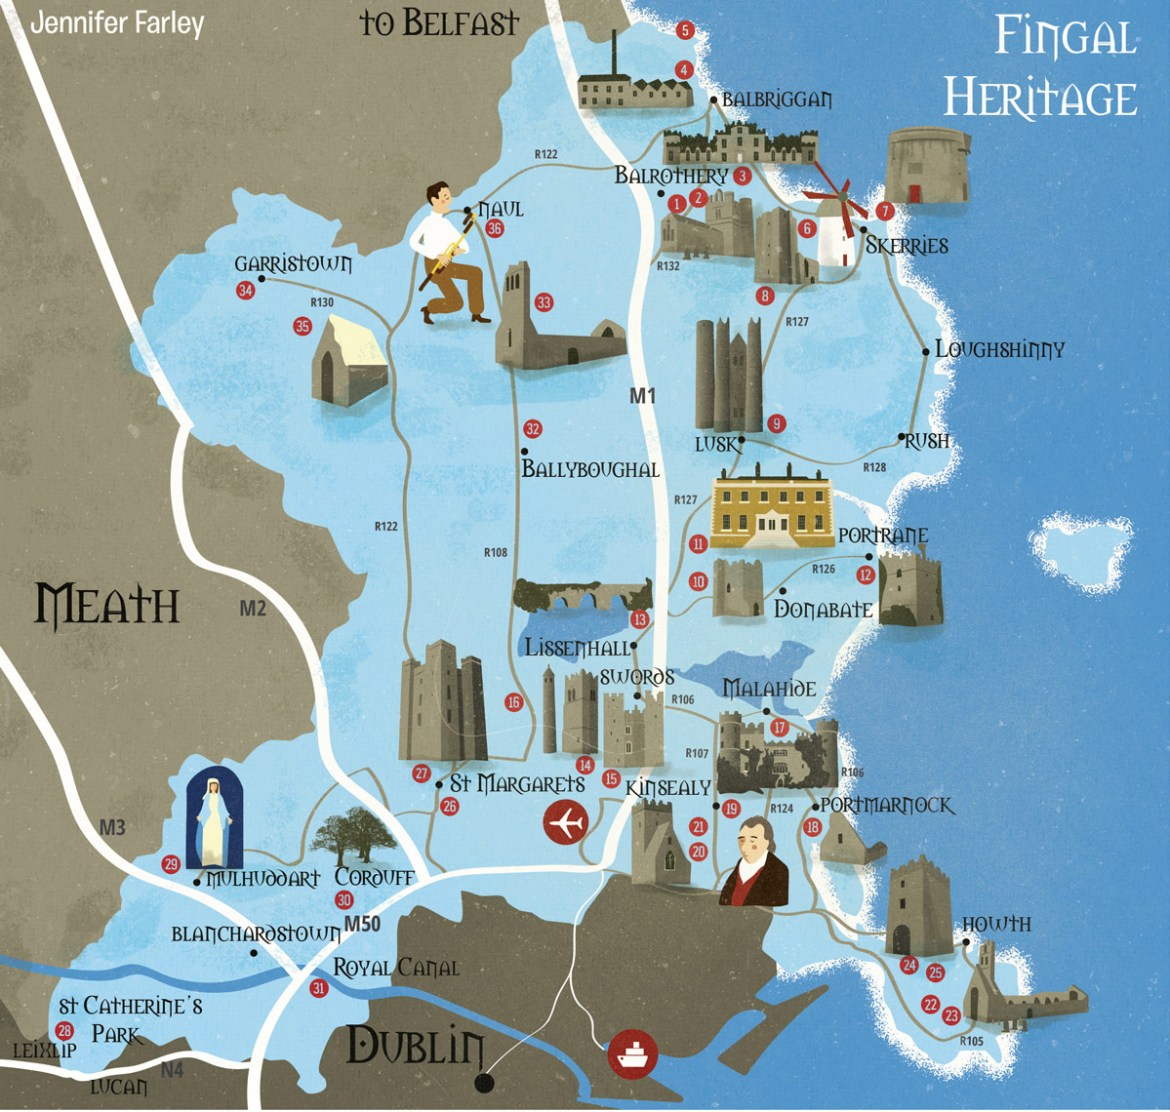 Map of Heritage Sites in Fingal illustrated by Jennifer Farley